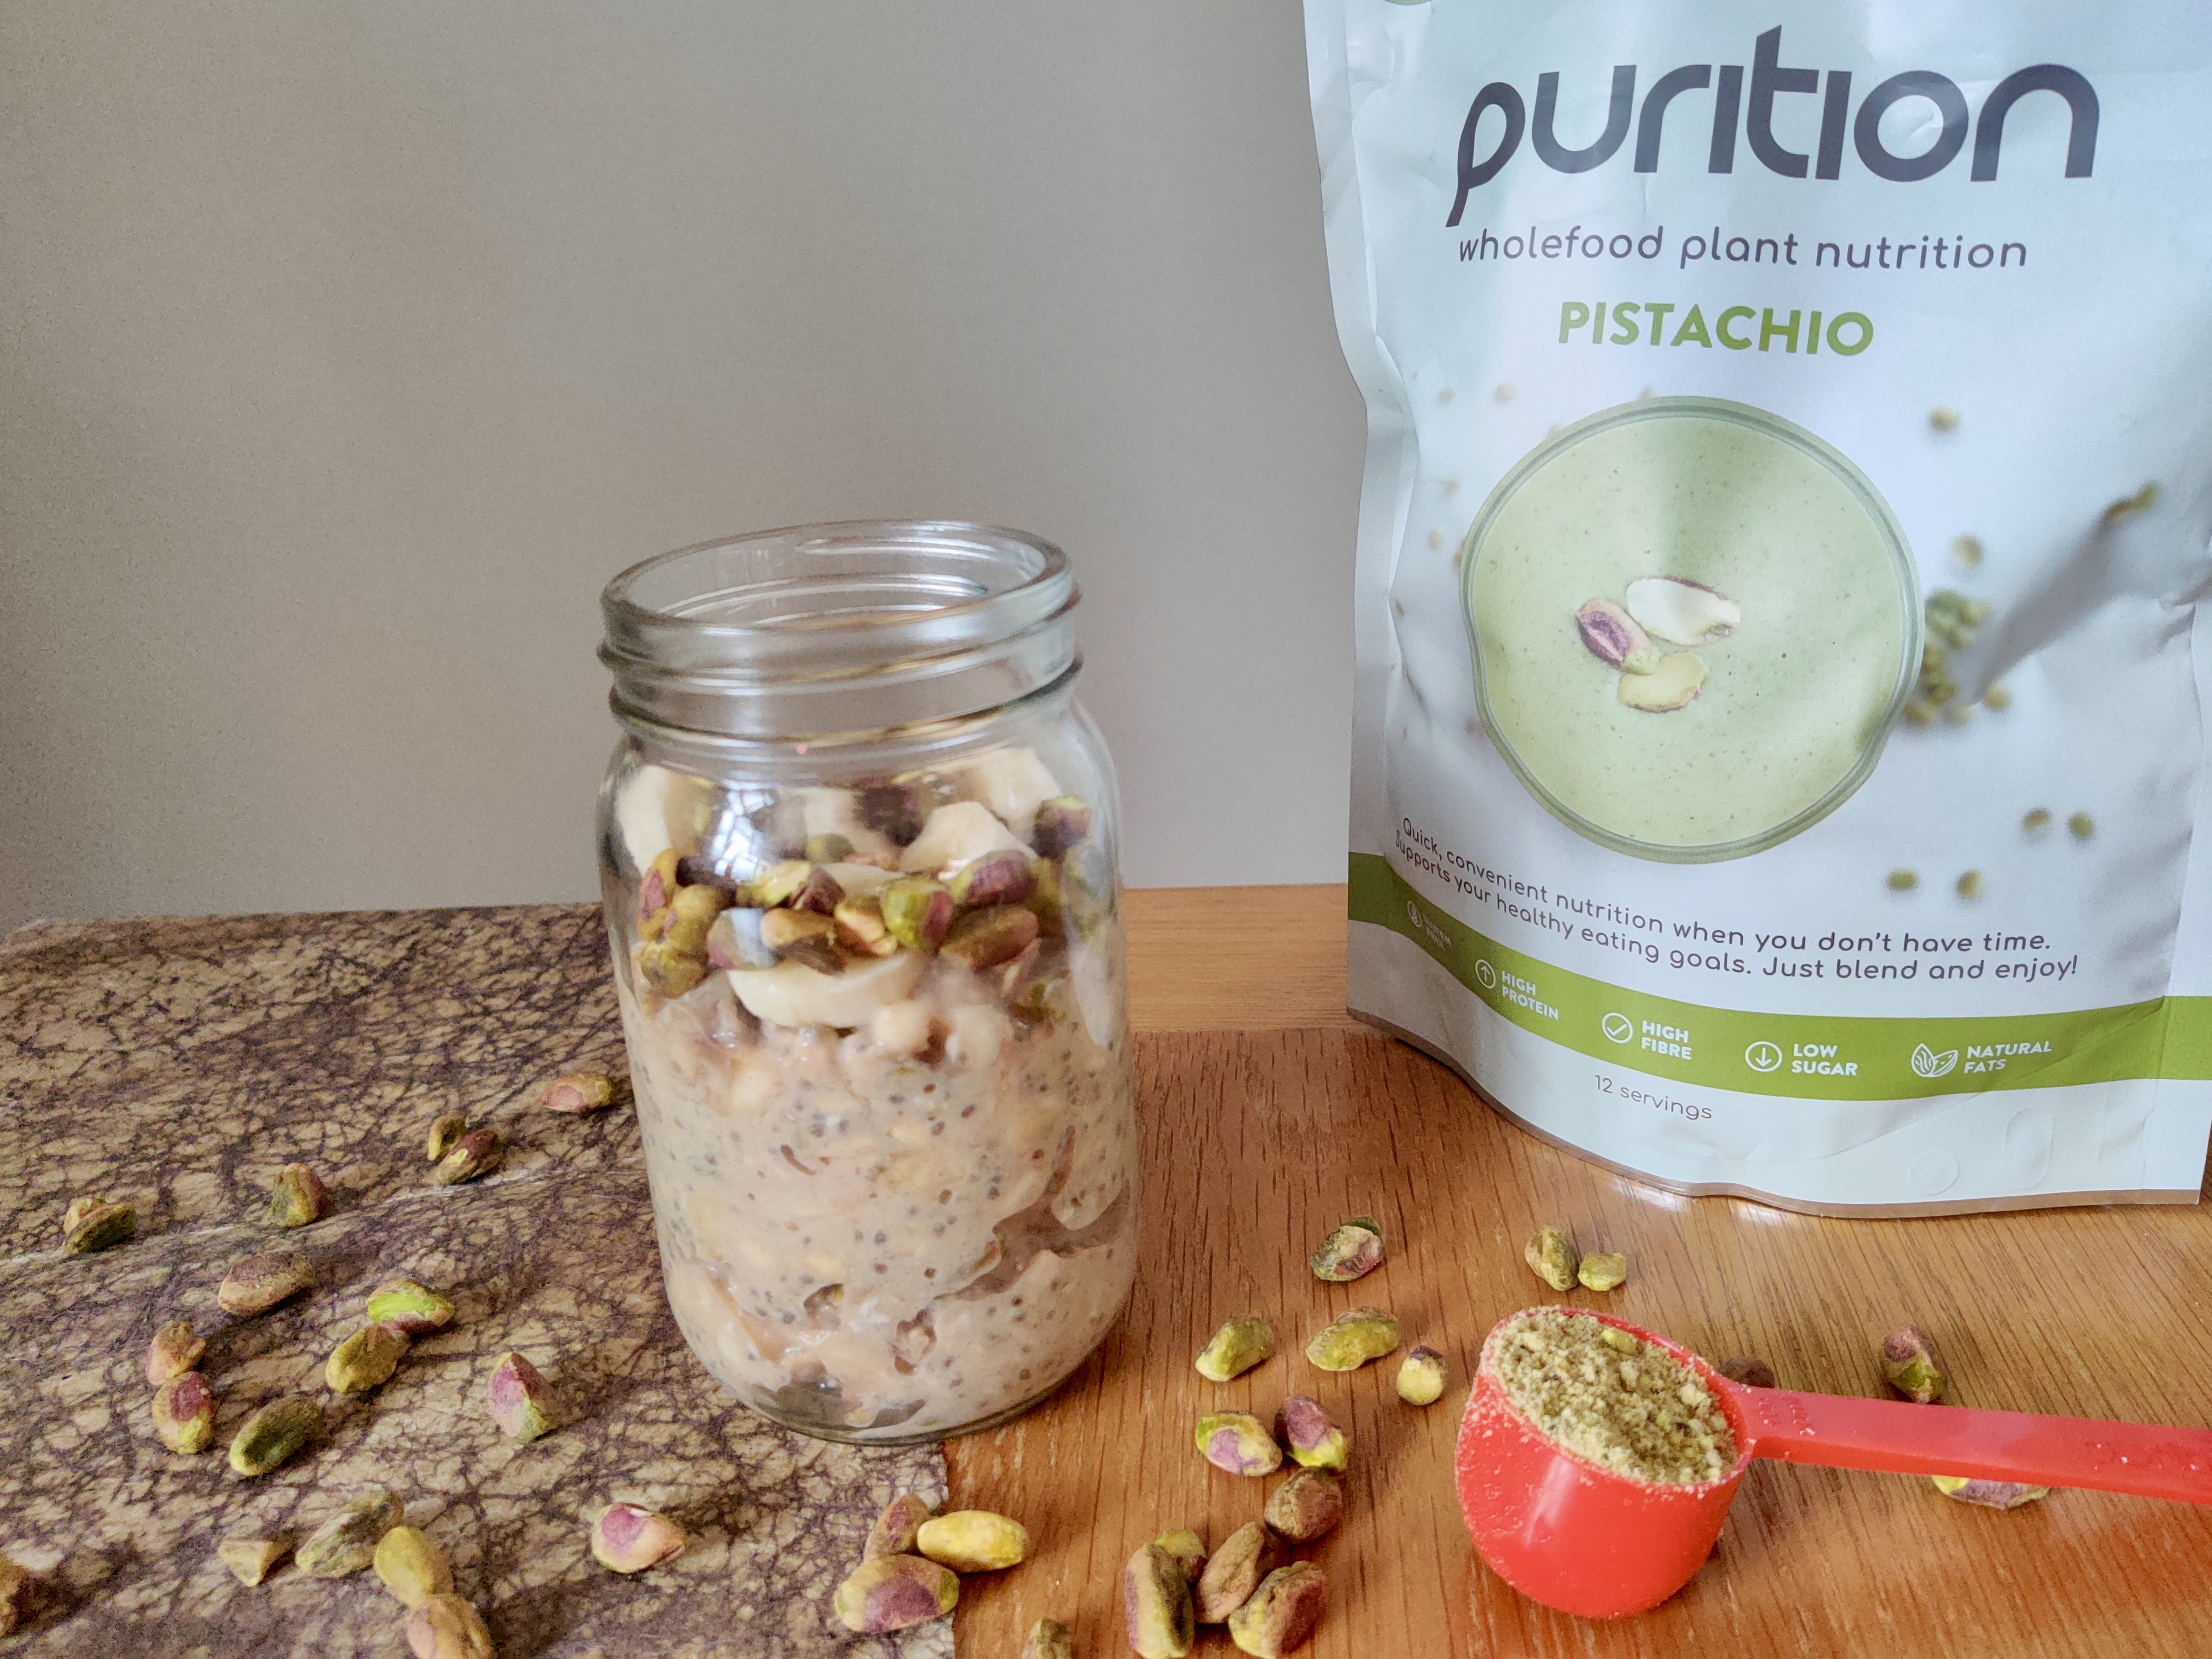 Pistachio overnight oats are packed with fibre which encourages healthy digestion.